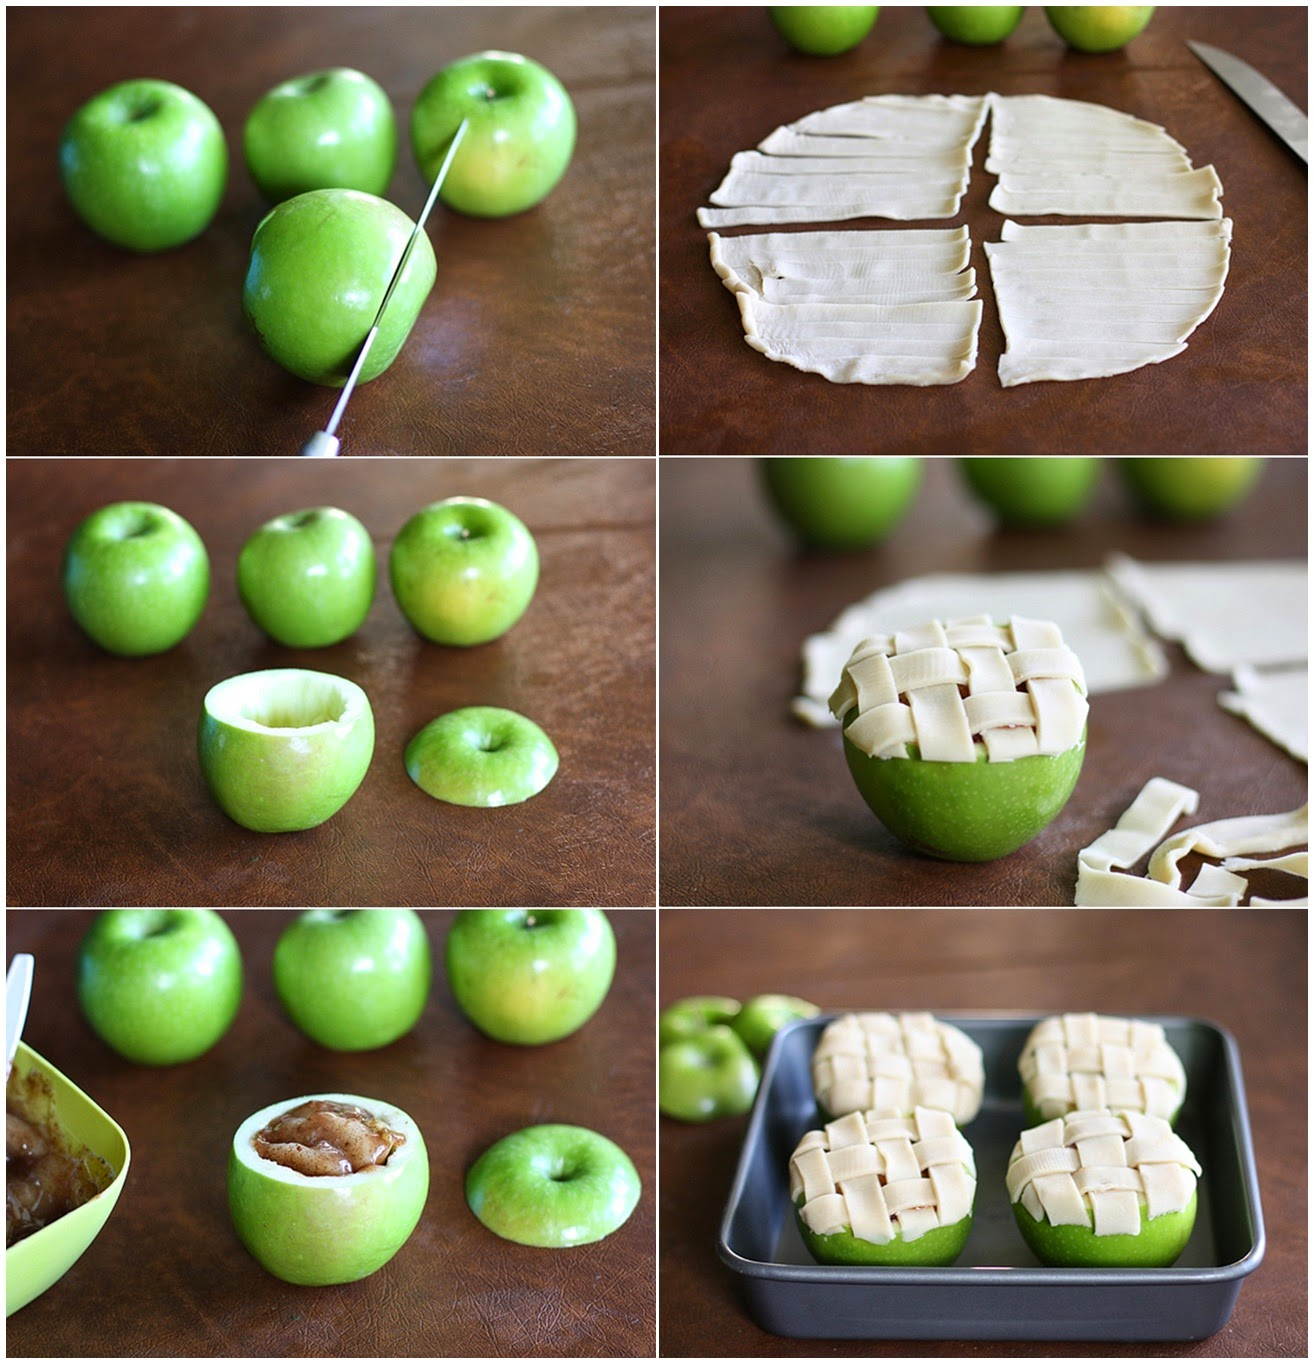 Diy Apple Pie Baked In An Apple Diy Craft Projects